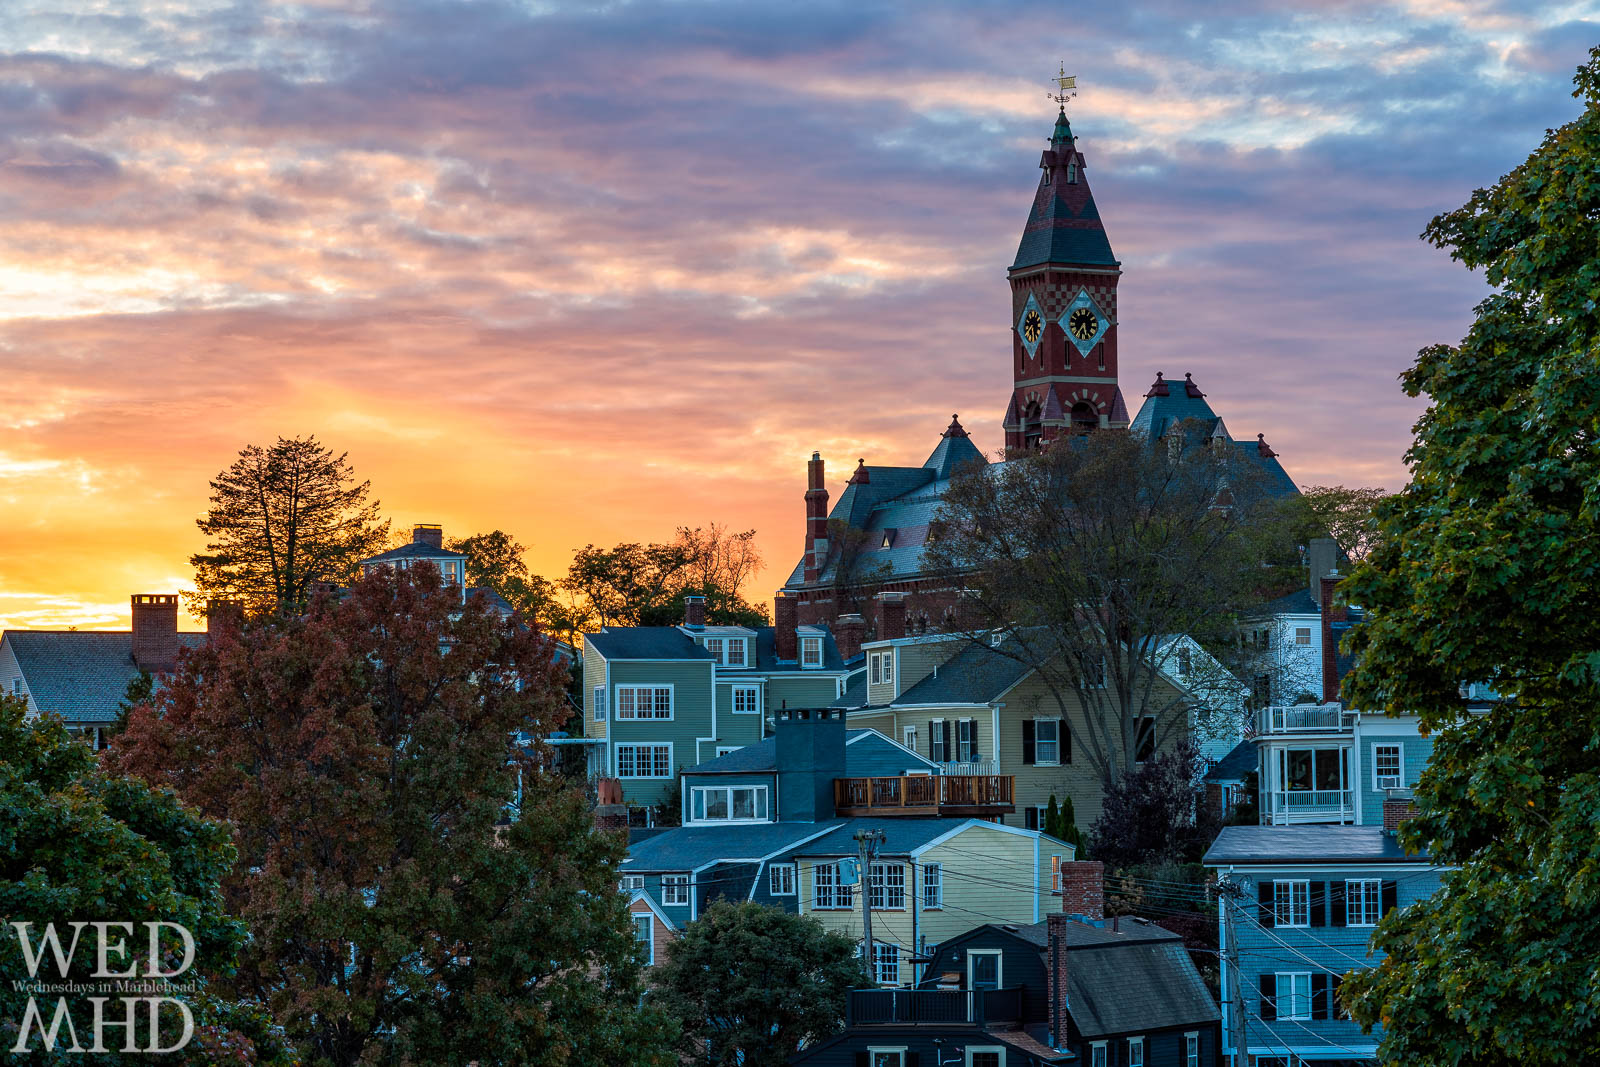 Abbot Hall stands above houses and under a brilliant sky viewed from Crocker Park at sunset